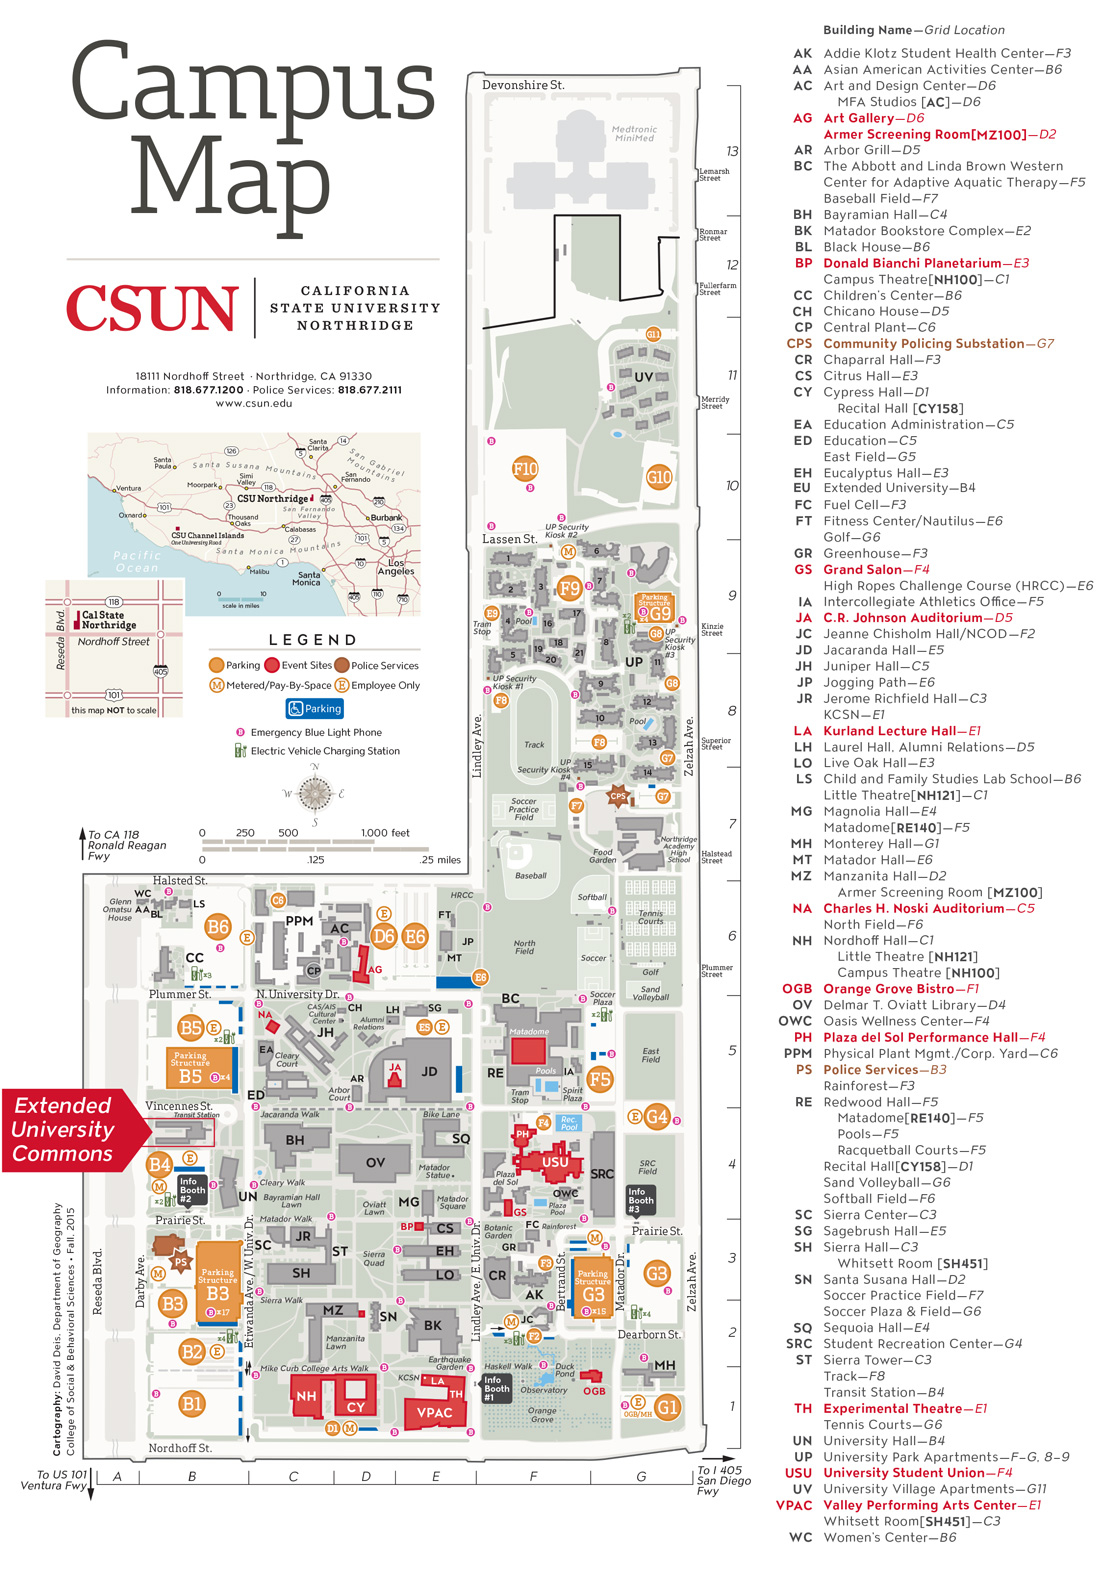 Contact Us > Visit Tseng College | Cal State Northridge - Csun for Cal State Northridge School Calendar